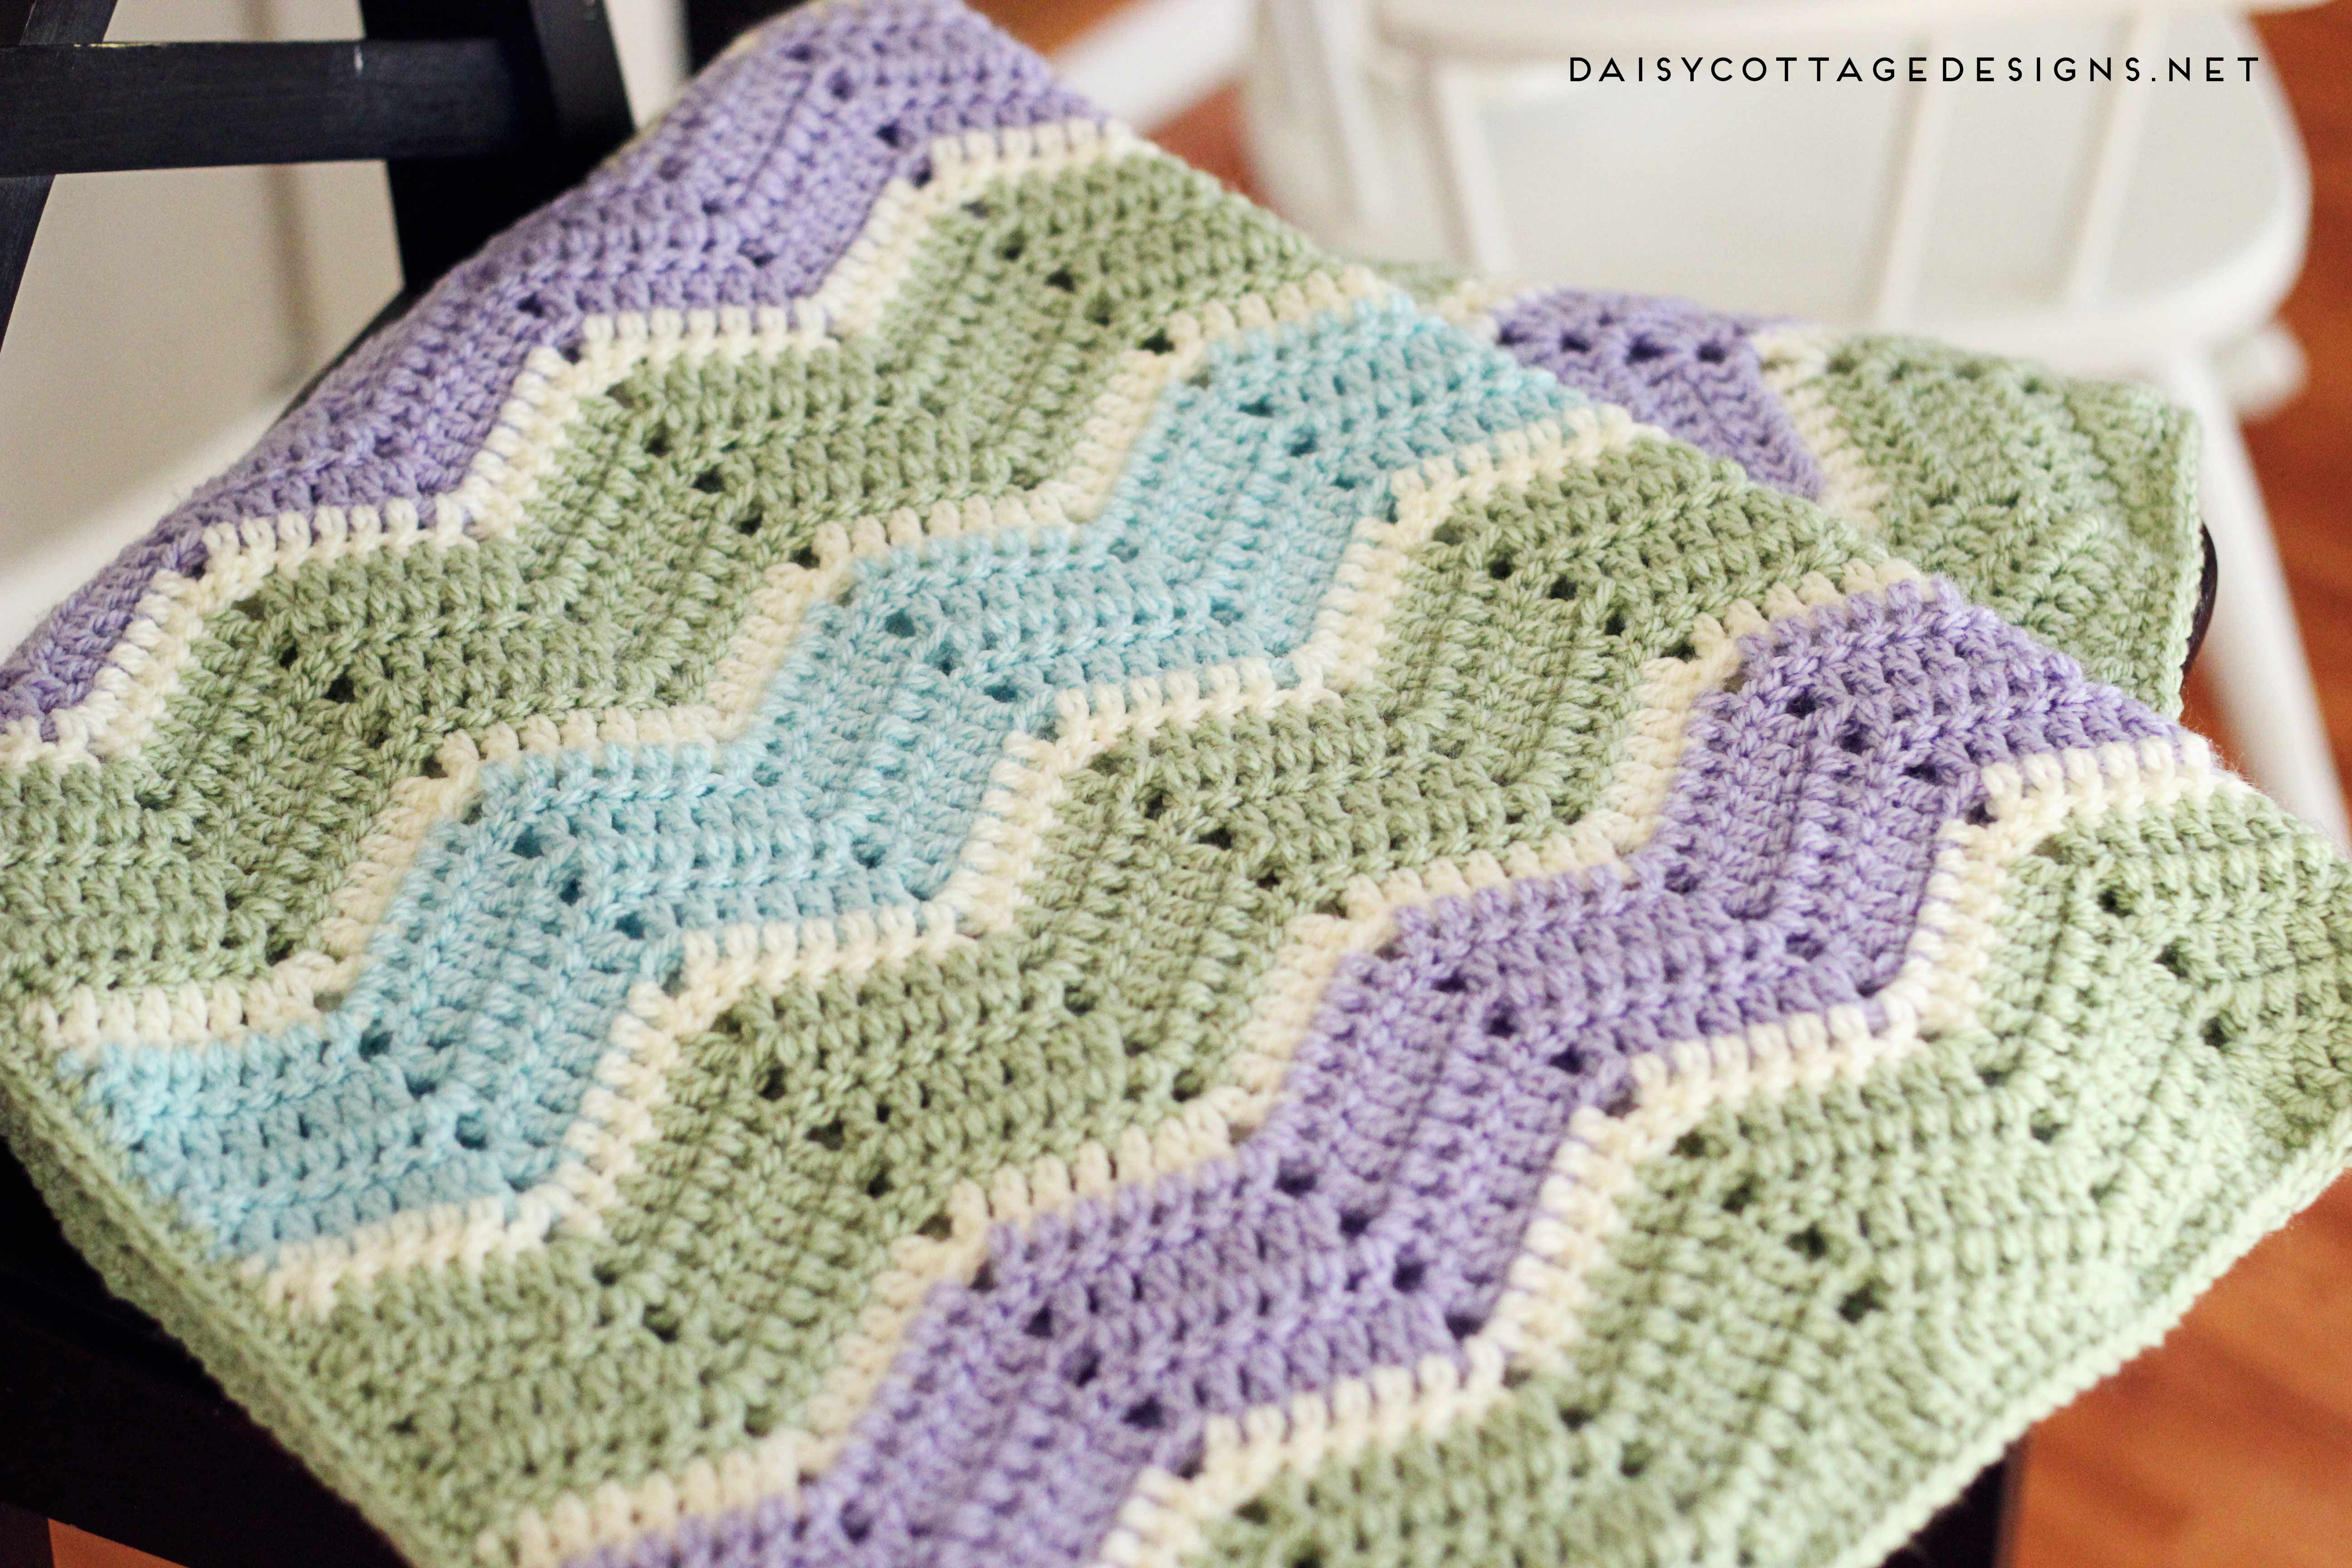 Begginer Crochet Projects Baby Blankets Easy Chevron Blanket Crochet Pattern Daisy Cottage Designs